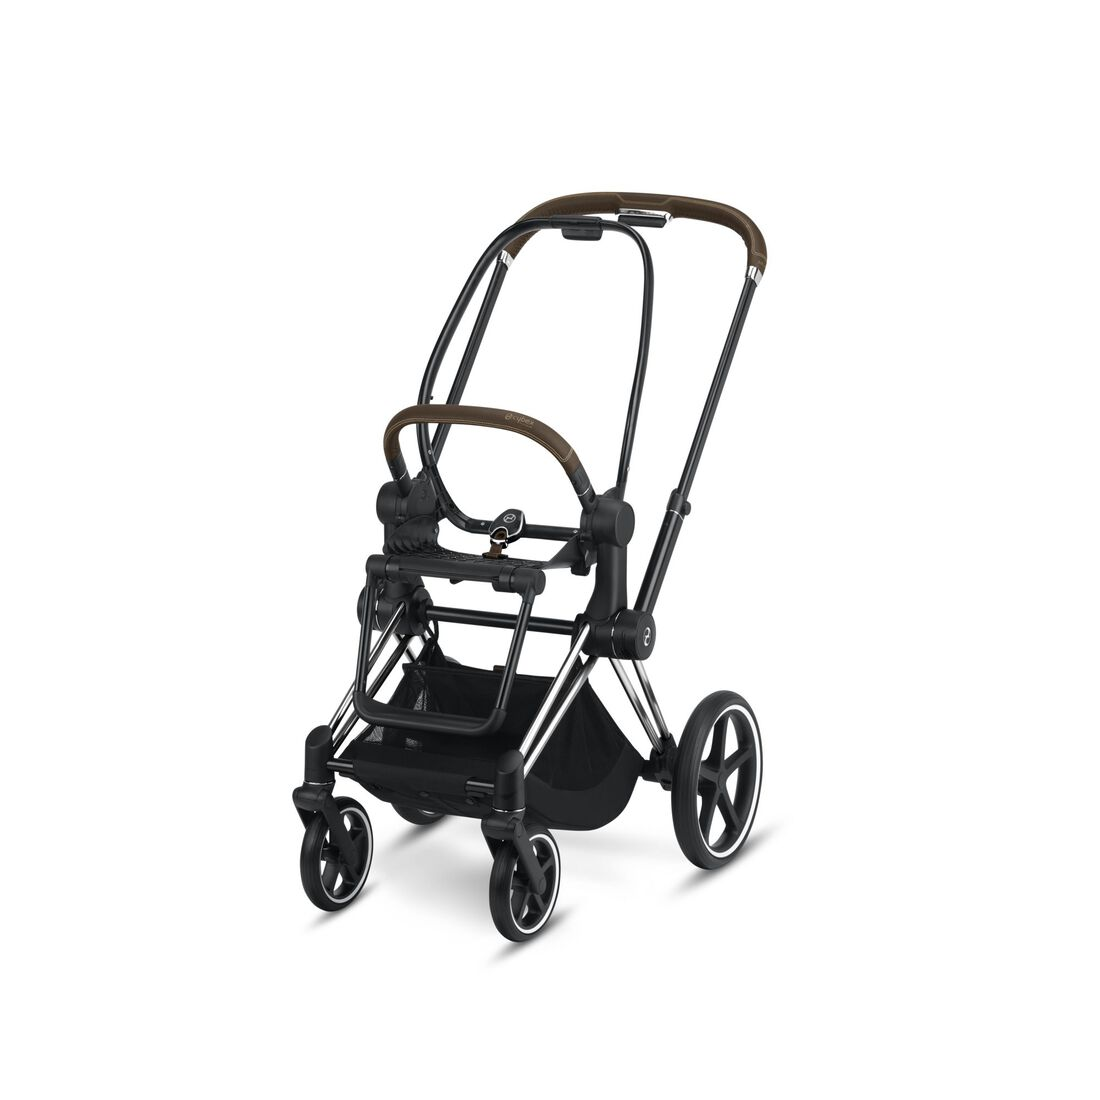 CYBEX Priam Frame - Chrome With Brown Details in Chrome With Brown Details large image number 1